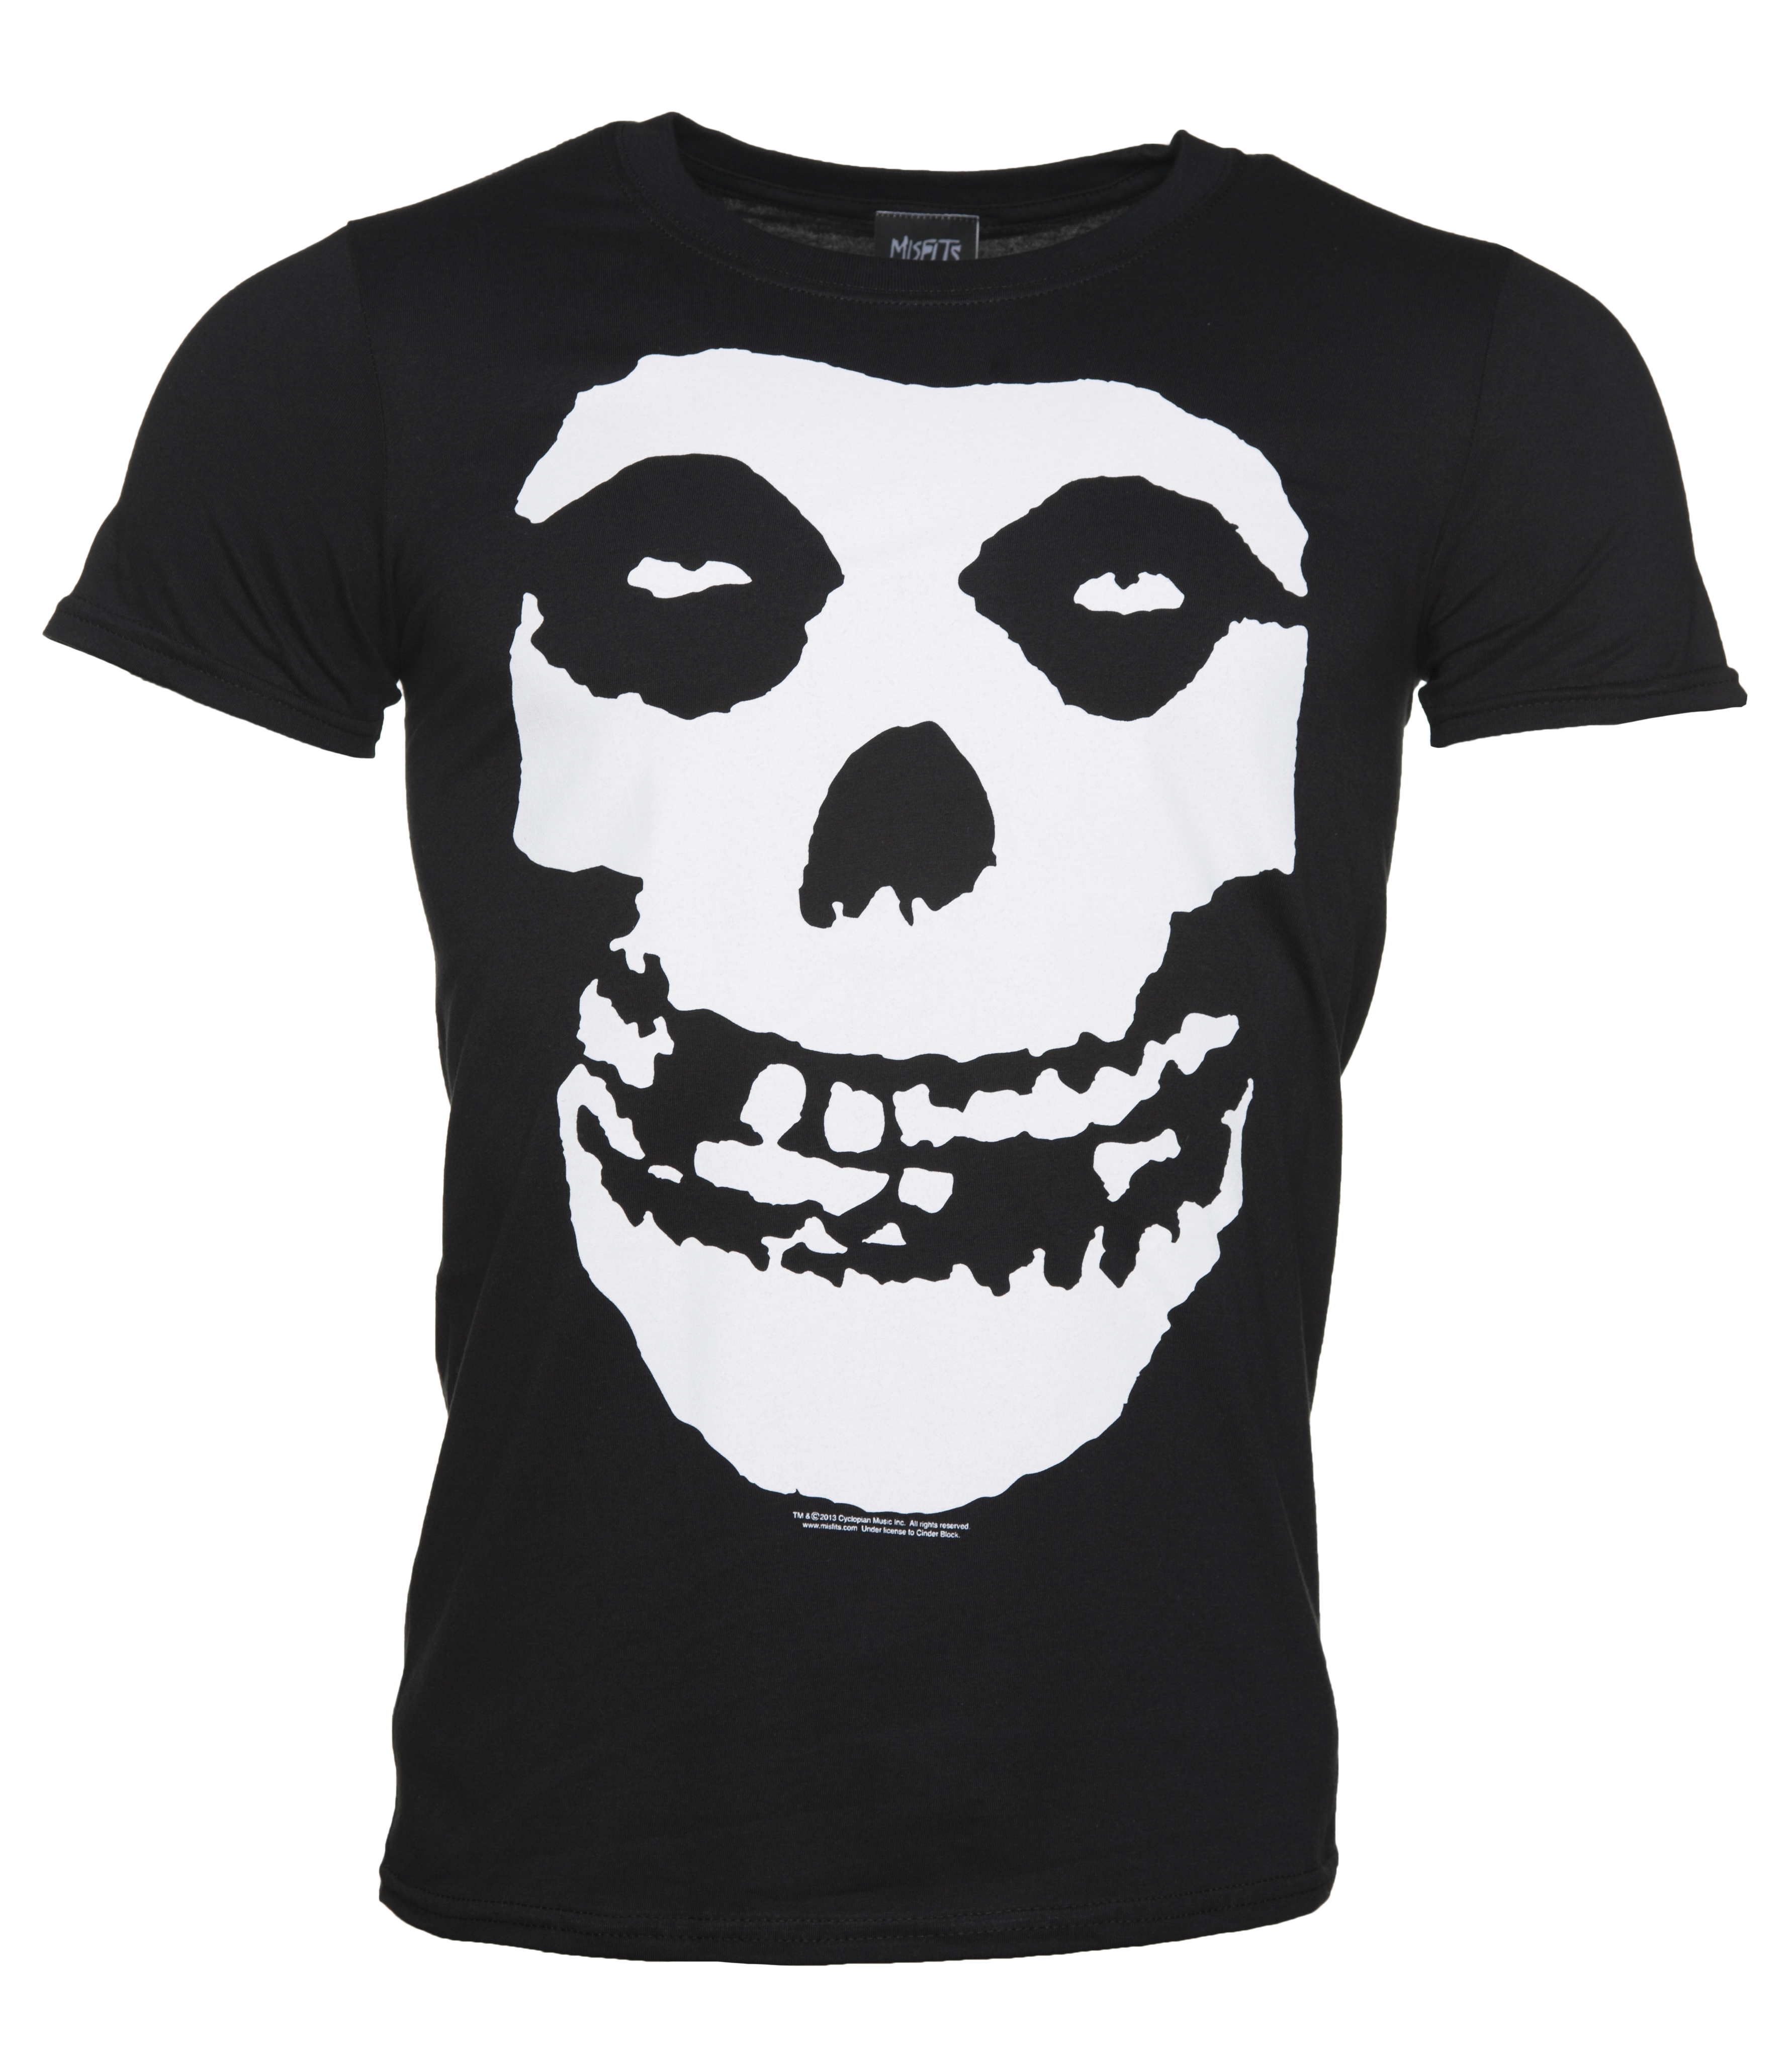 Black t shirt with print - More Info Men S Misfits Skull T Shirt With Back Print